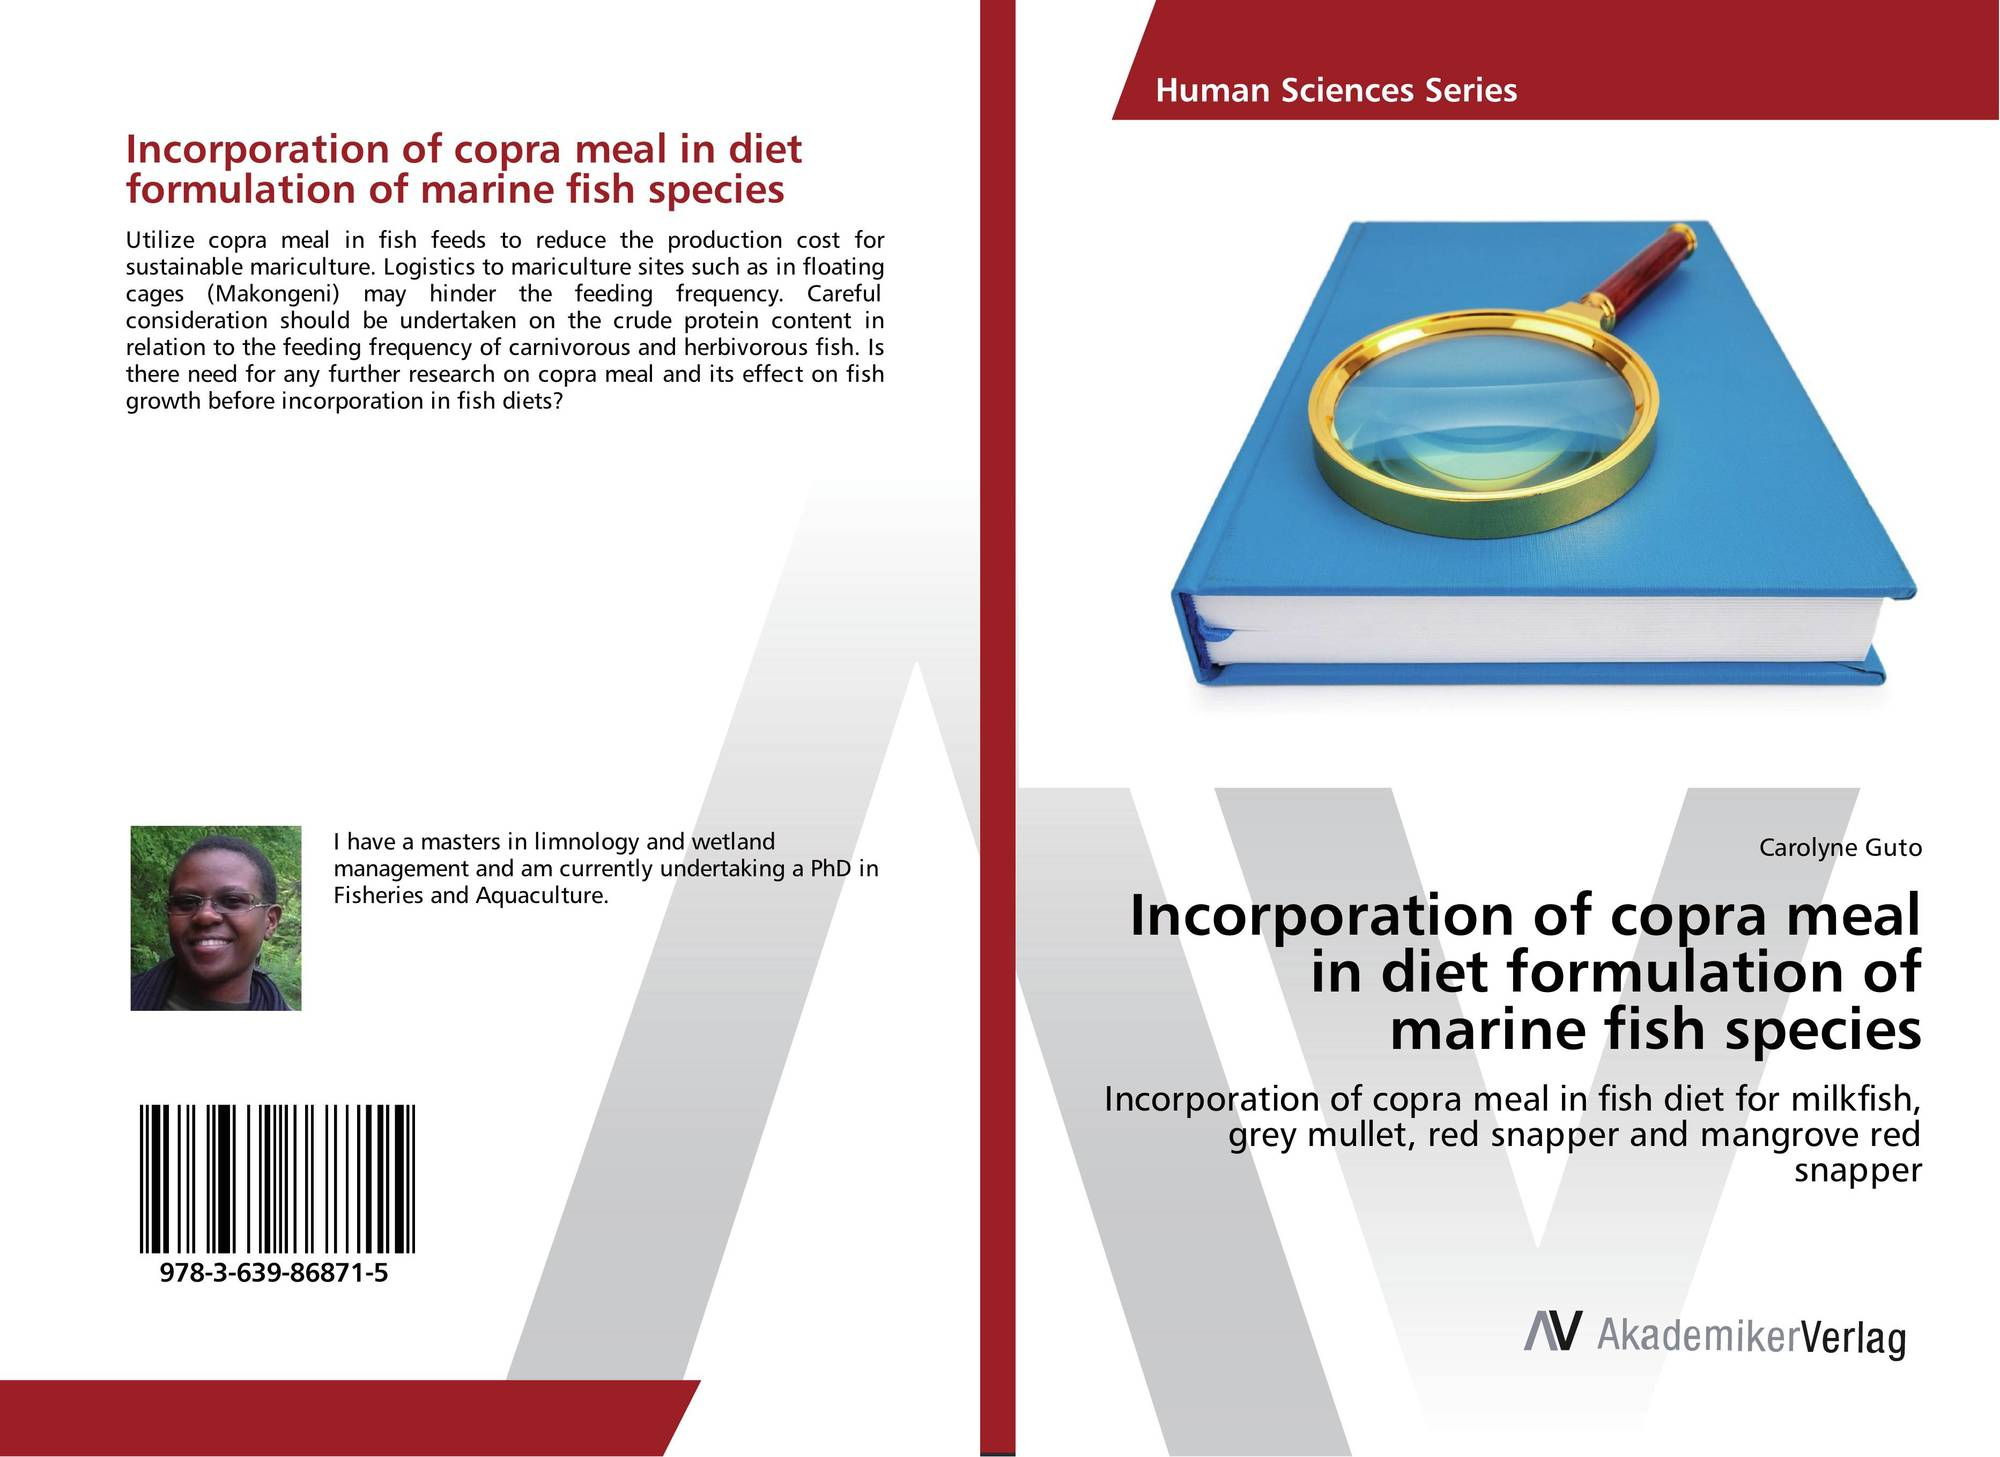 Incorporation of copra meal in diet formulation of marine